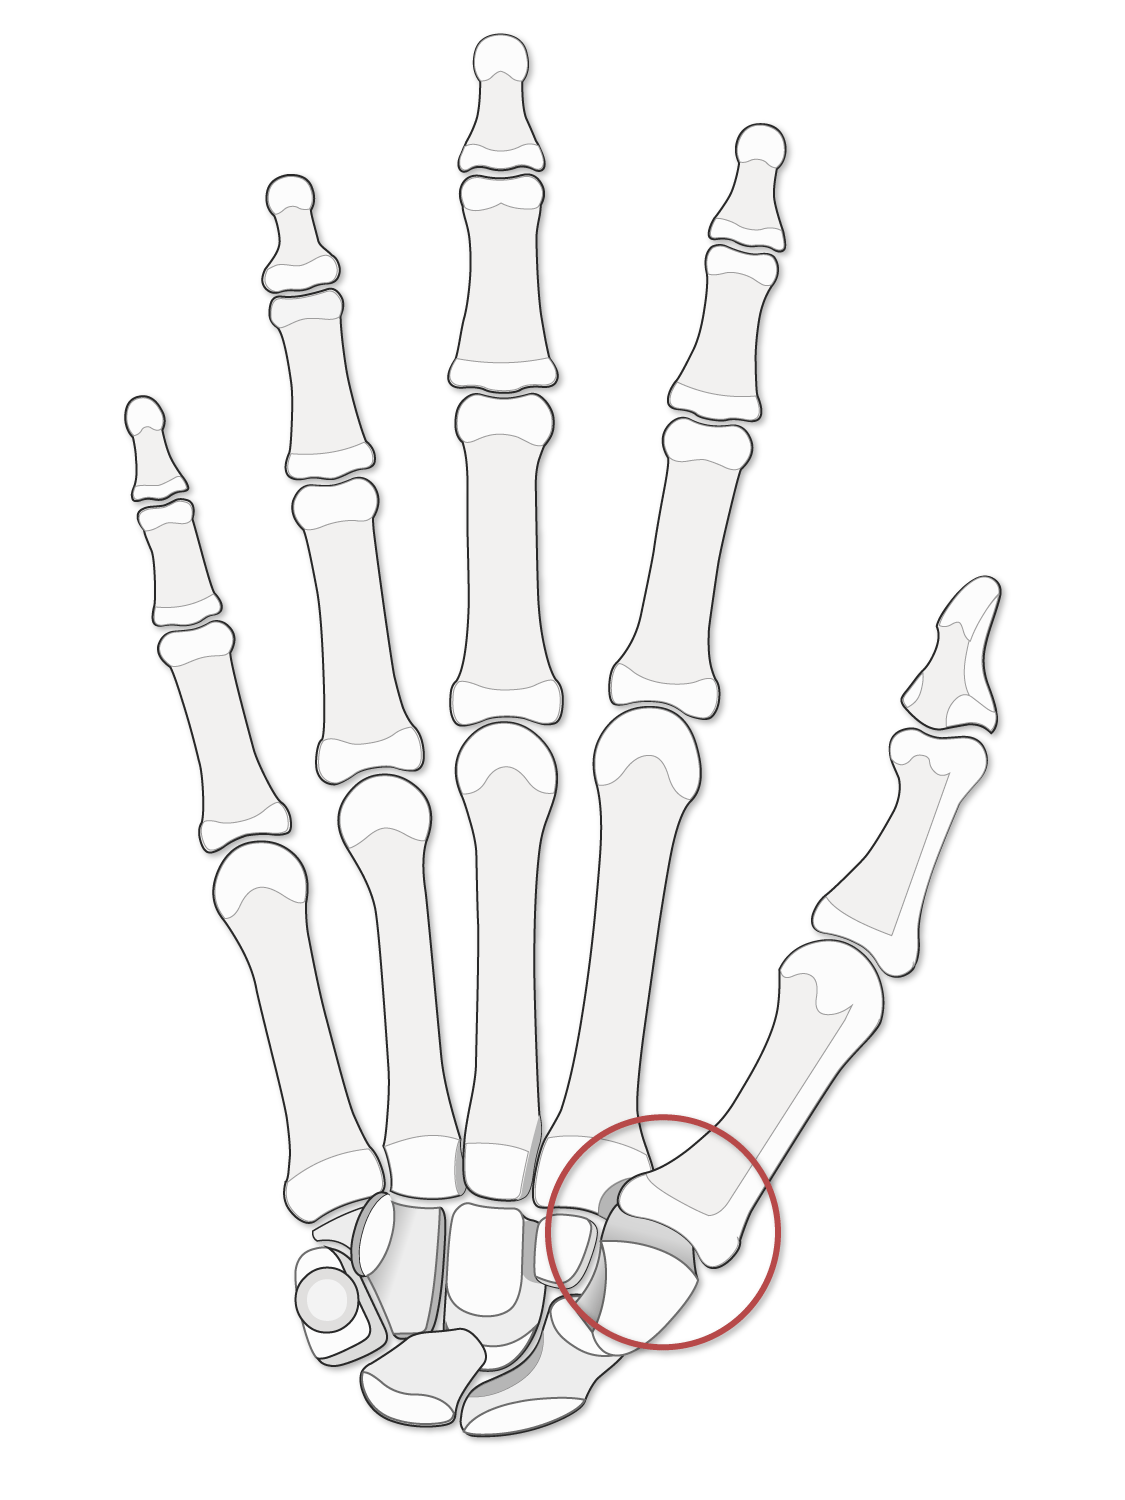 Form and function: thumb carpometacarpal Joint